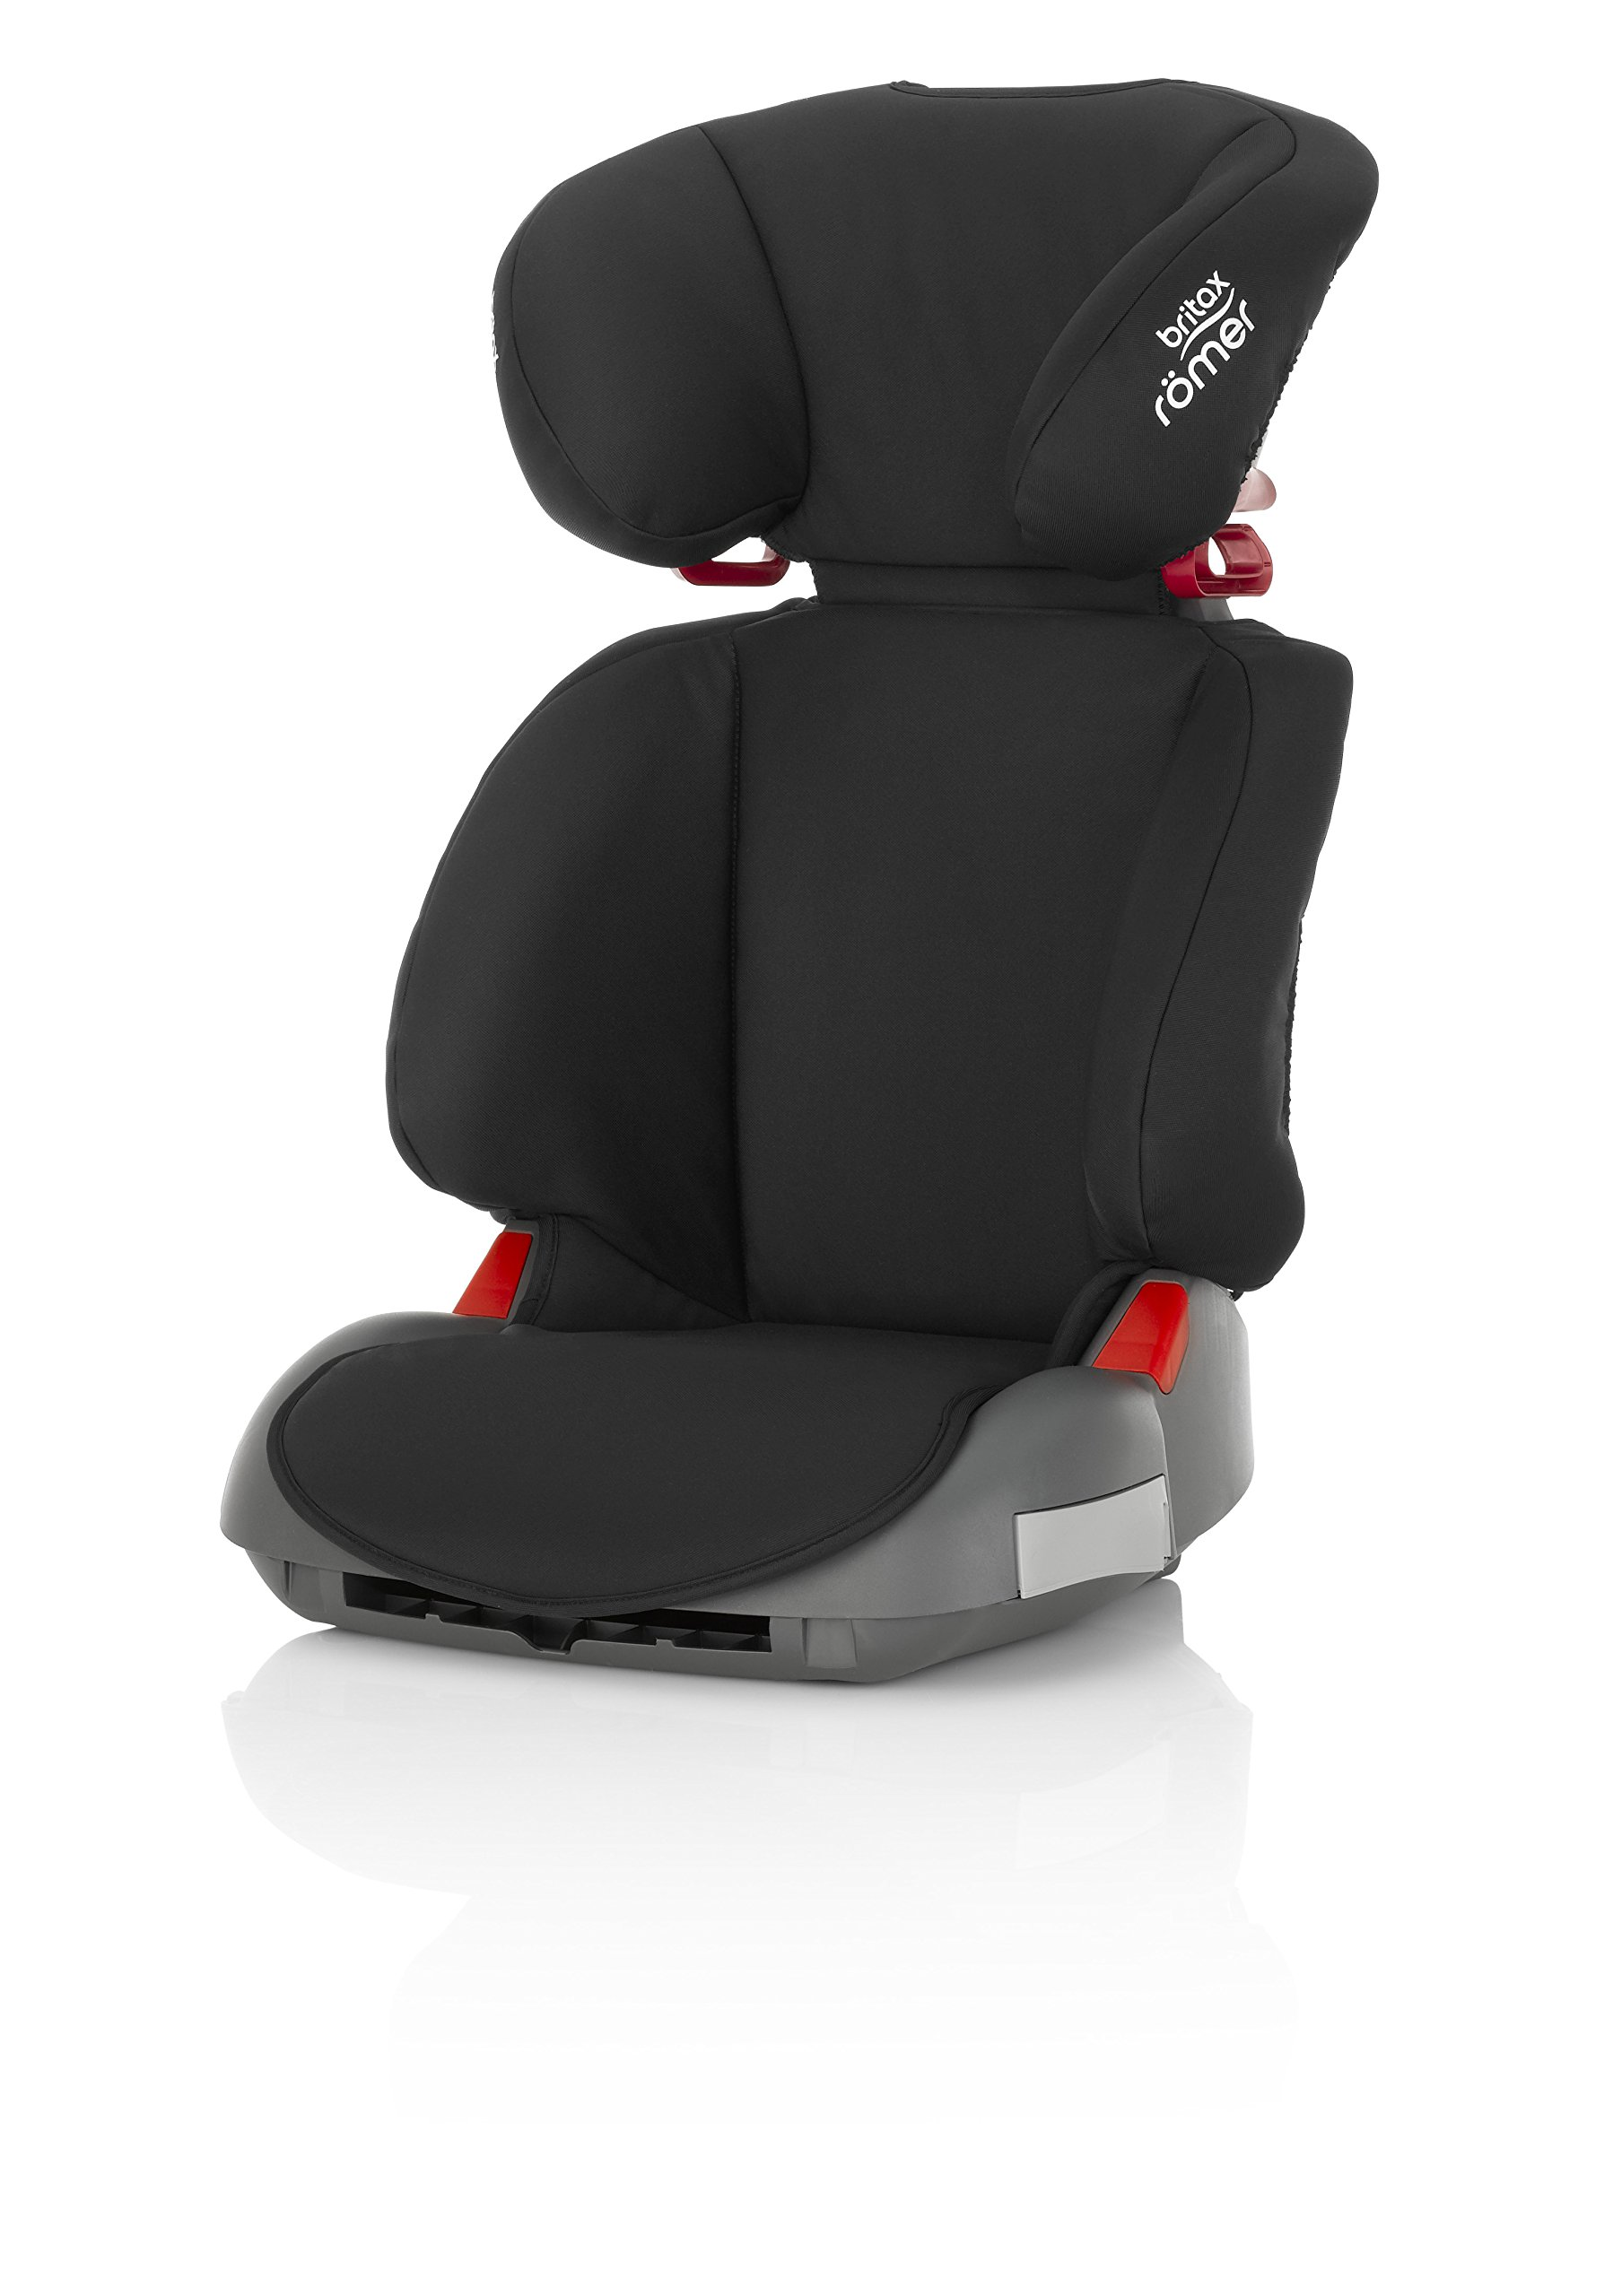 Britax Römer ADVENTURE Group 2-3 (15-36kg) Car Seat - Cosmos Black Britax Römer Intuitively positioned seat belt guides for straightforward installation every time. Machine washable seat cover that can easily be removed, so you can clean up quick and get on your way Reassurance of highback booster safety with side impact protection Lightweight, easily transferable shell 1